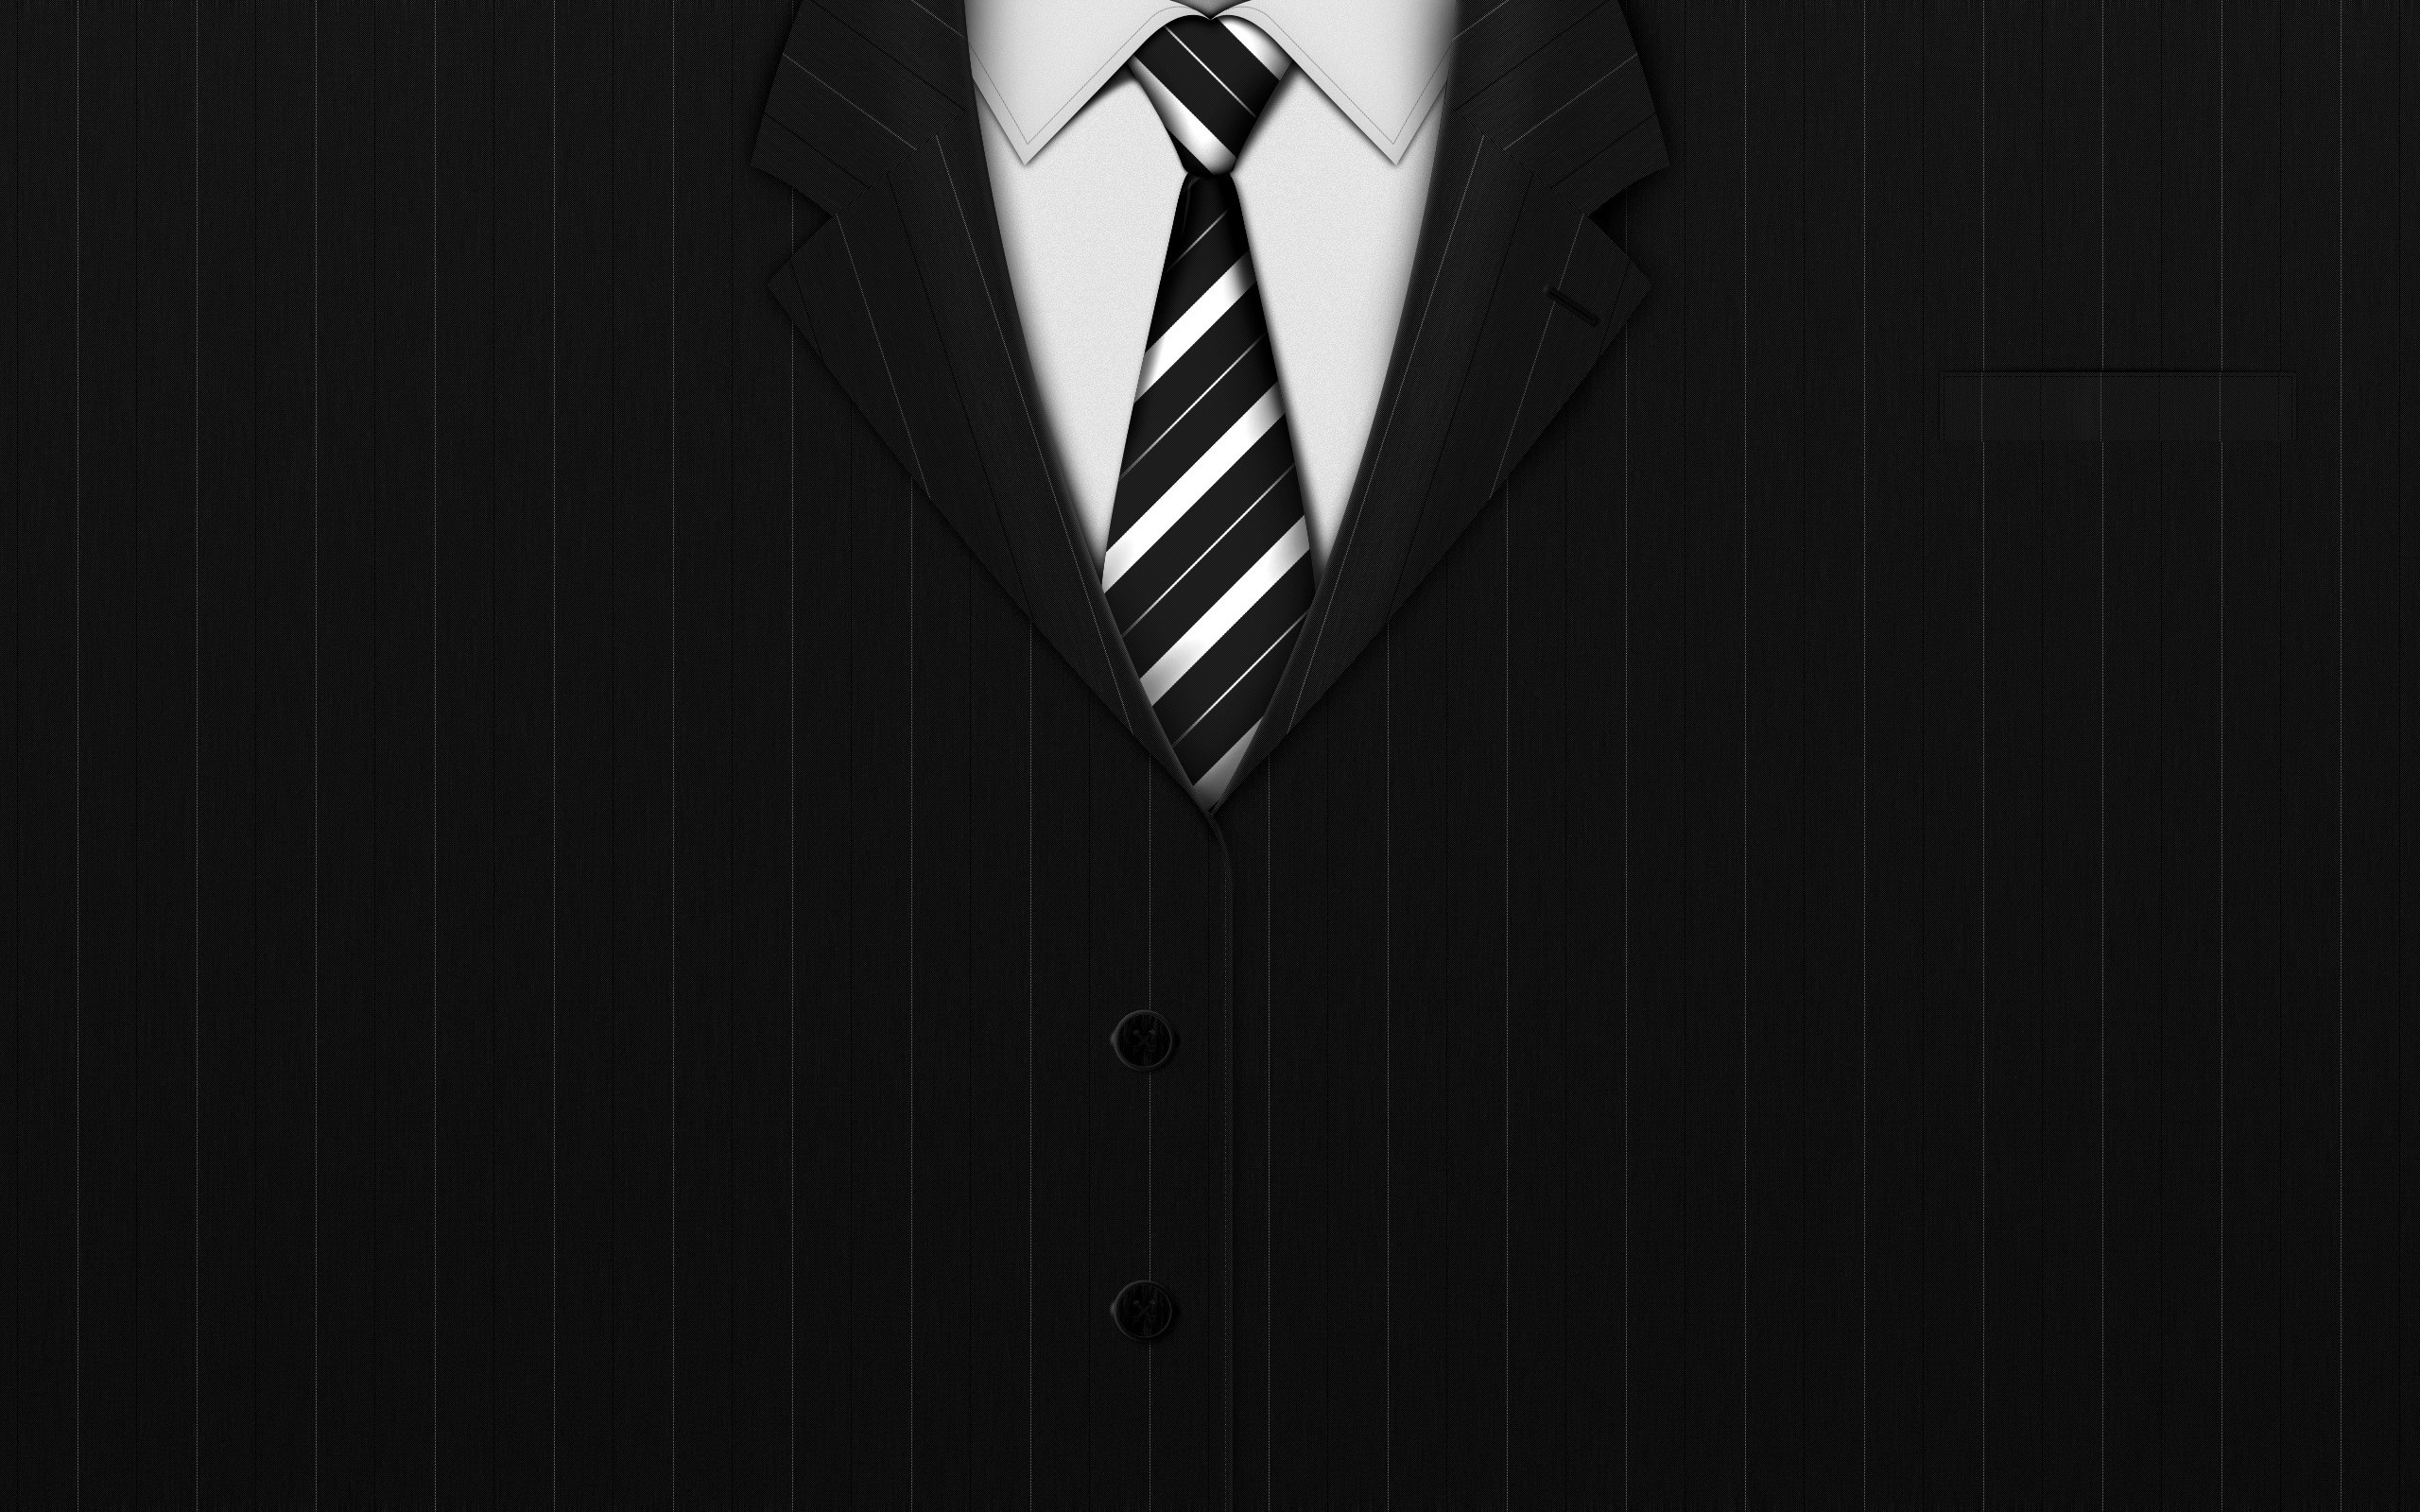 suit wallpaper hd (65+ images)